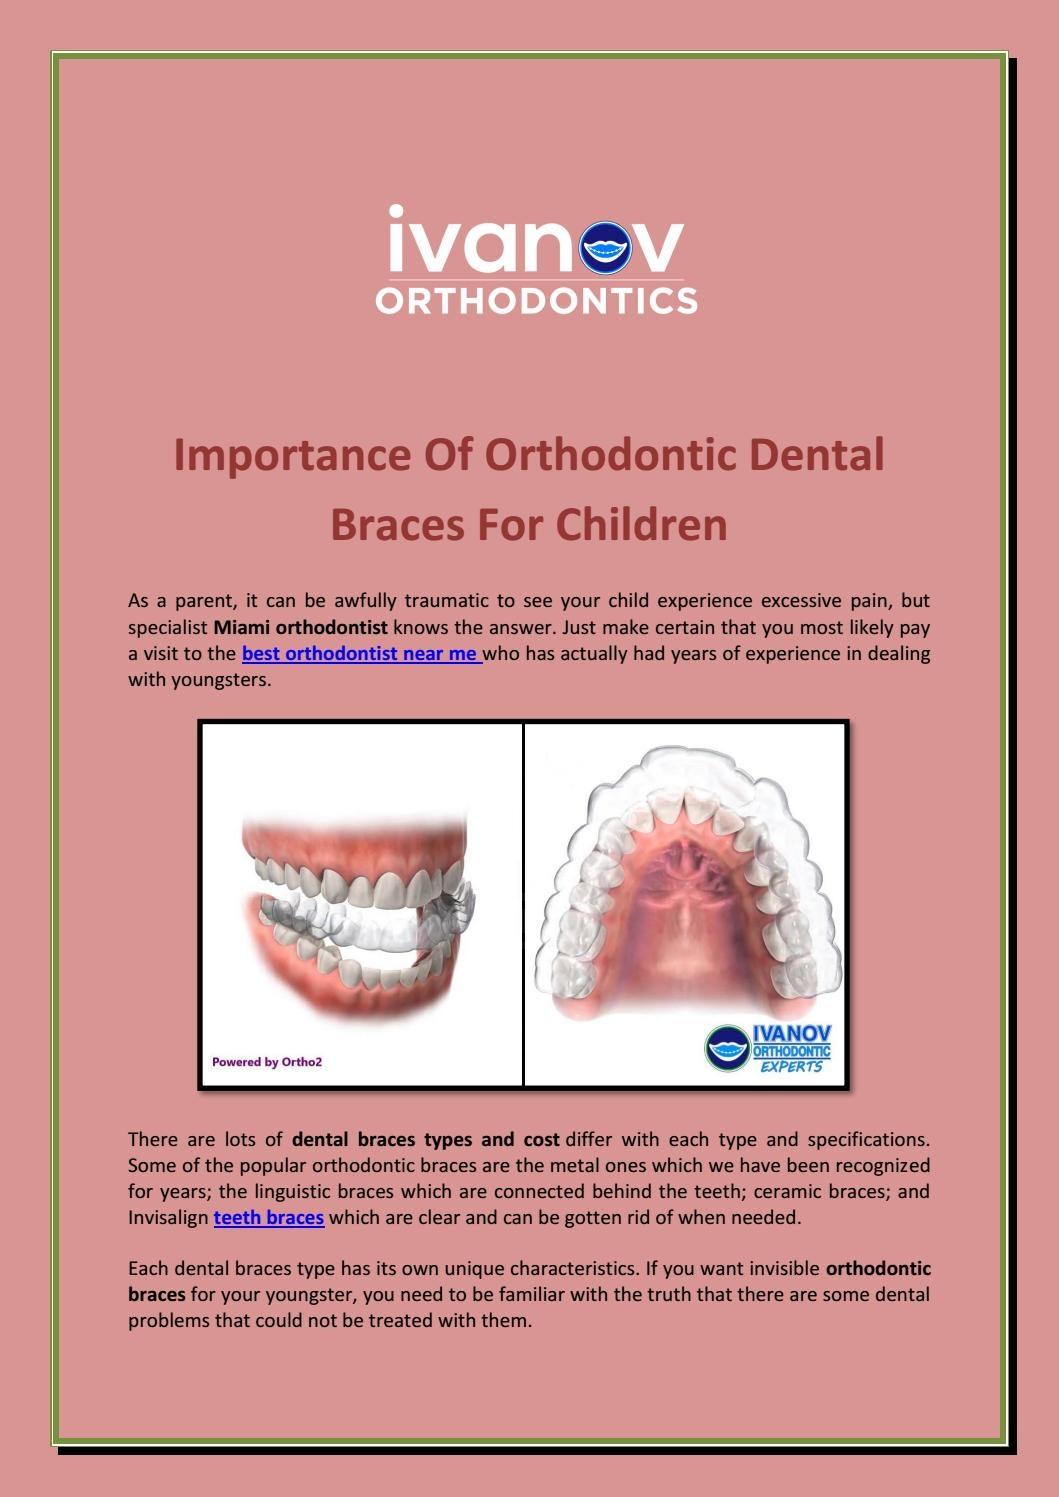 How To Make Your Own Braces : braces, Importance, Orthodontic, Dental, Braces, Children, Slessor, Issuu